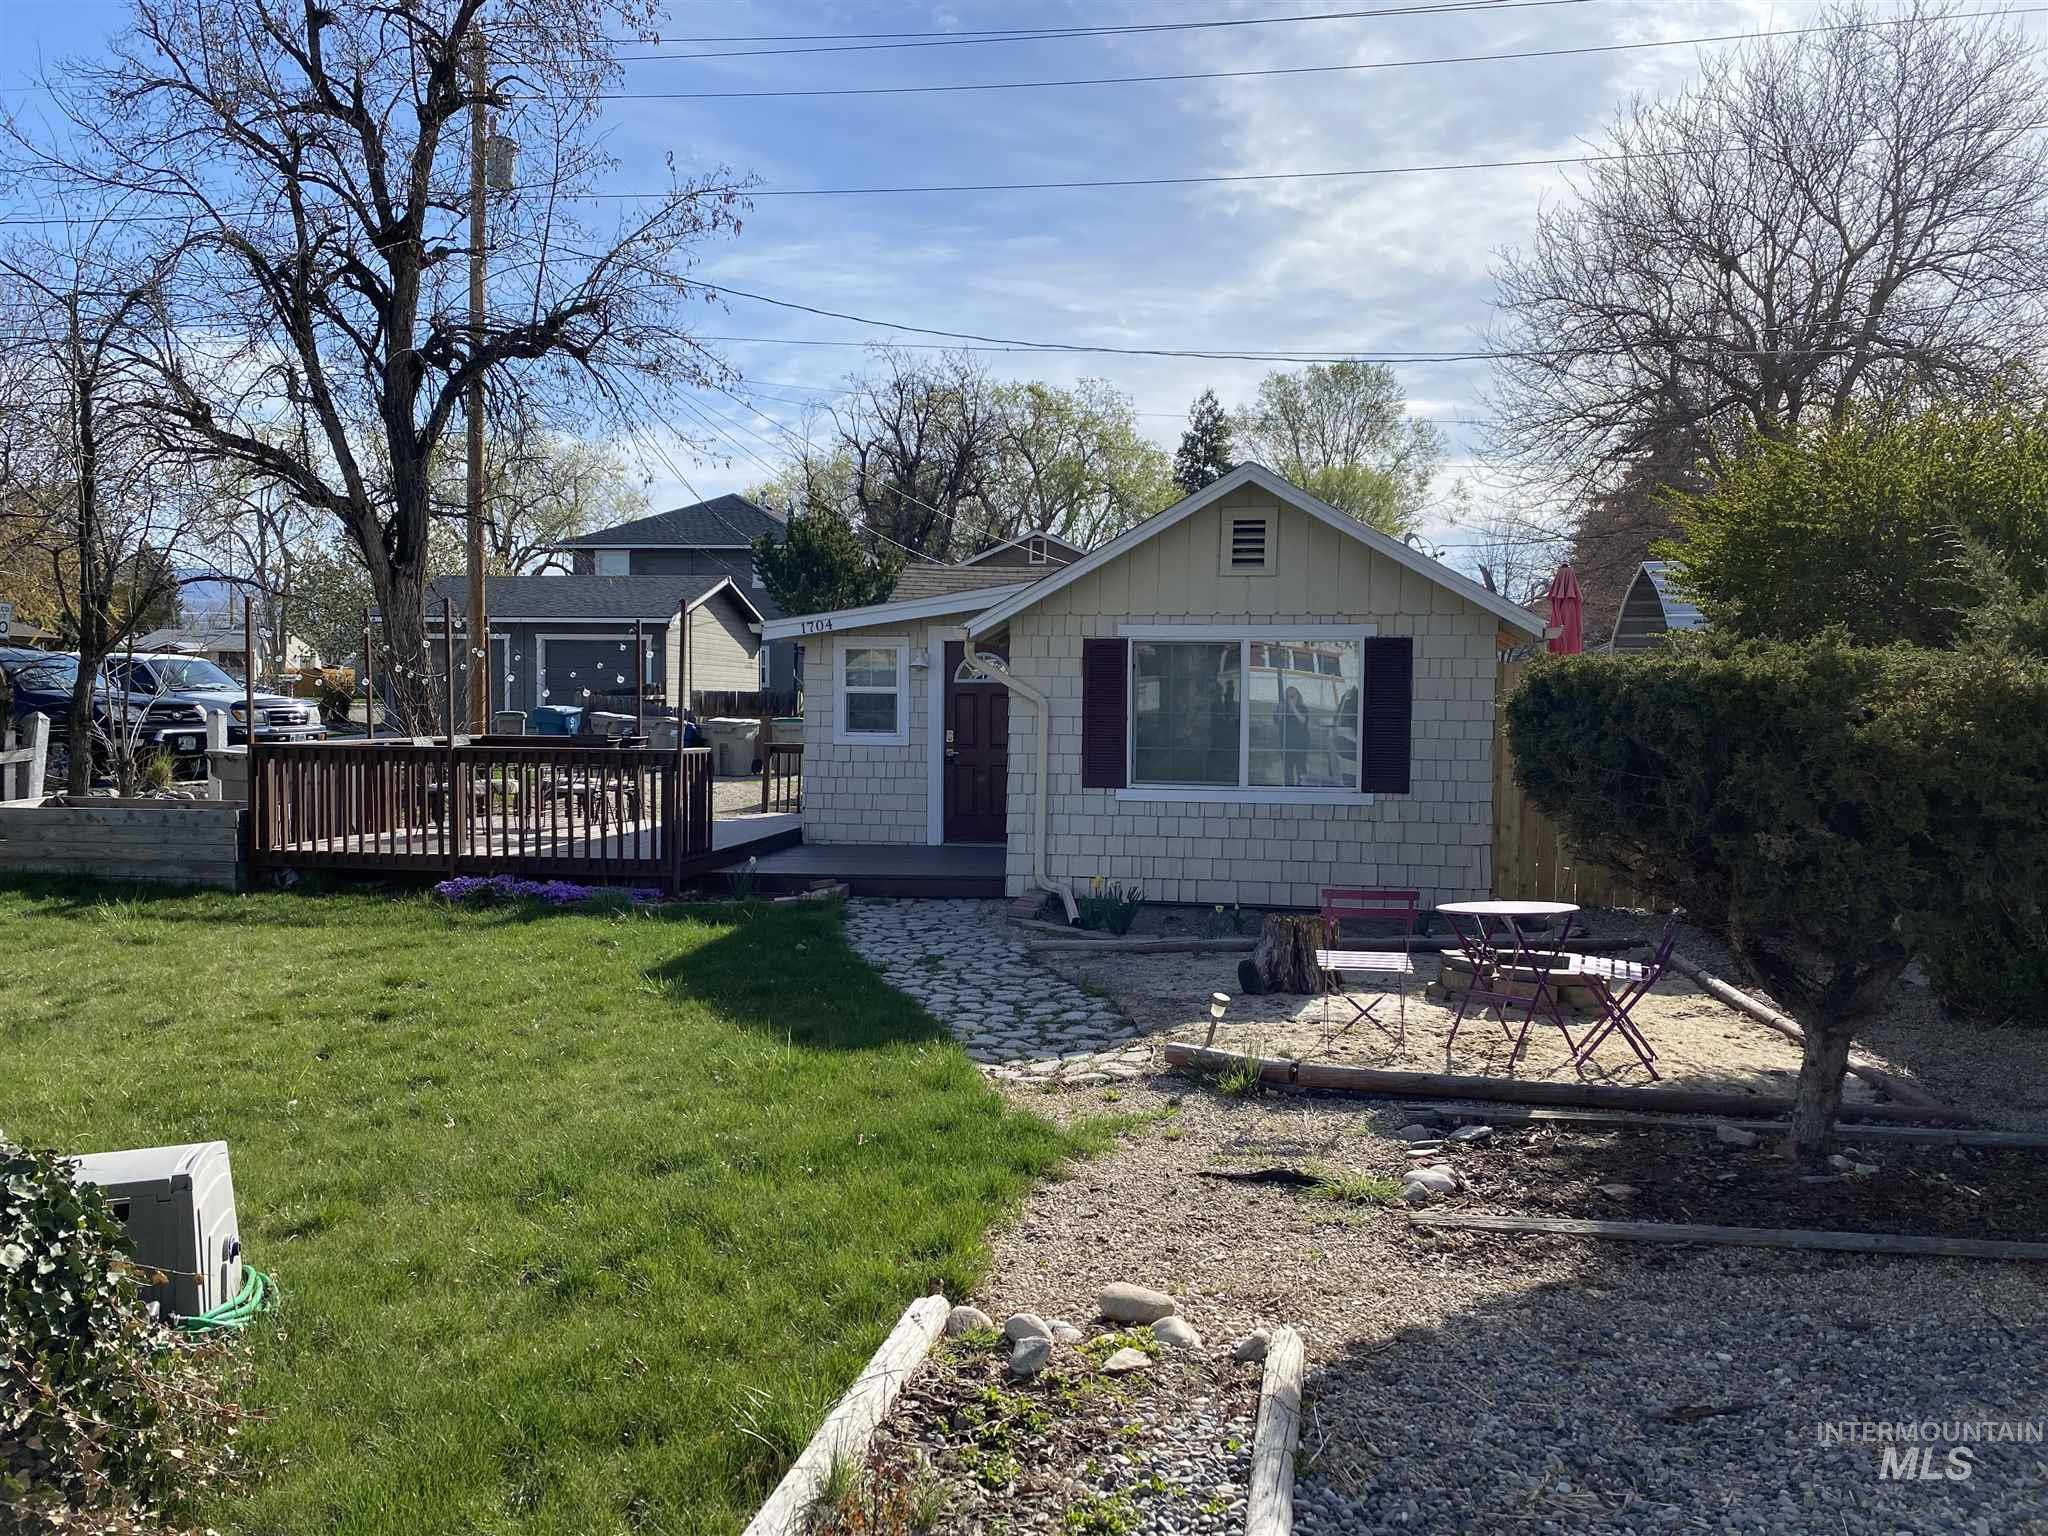 1704 S Vista Ave Property Photo - Boise, ID real estate listing